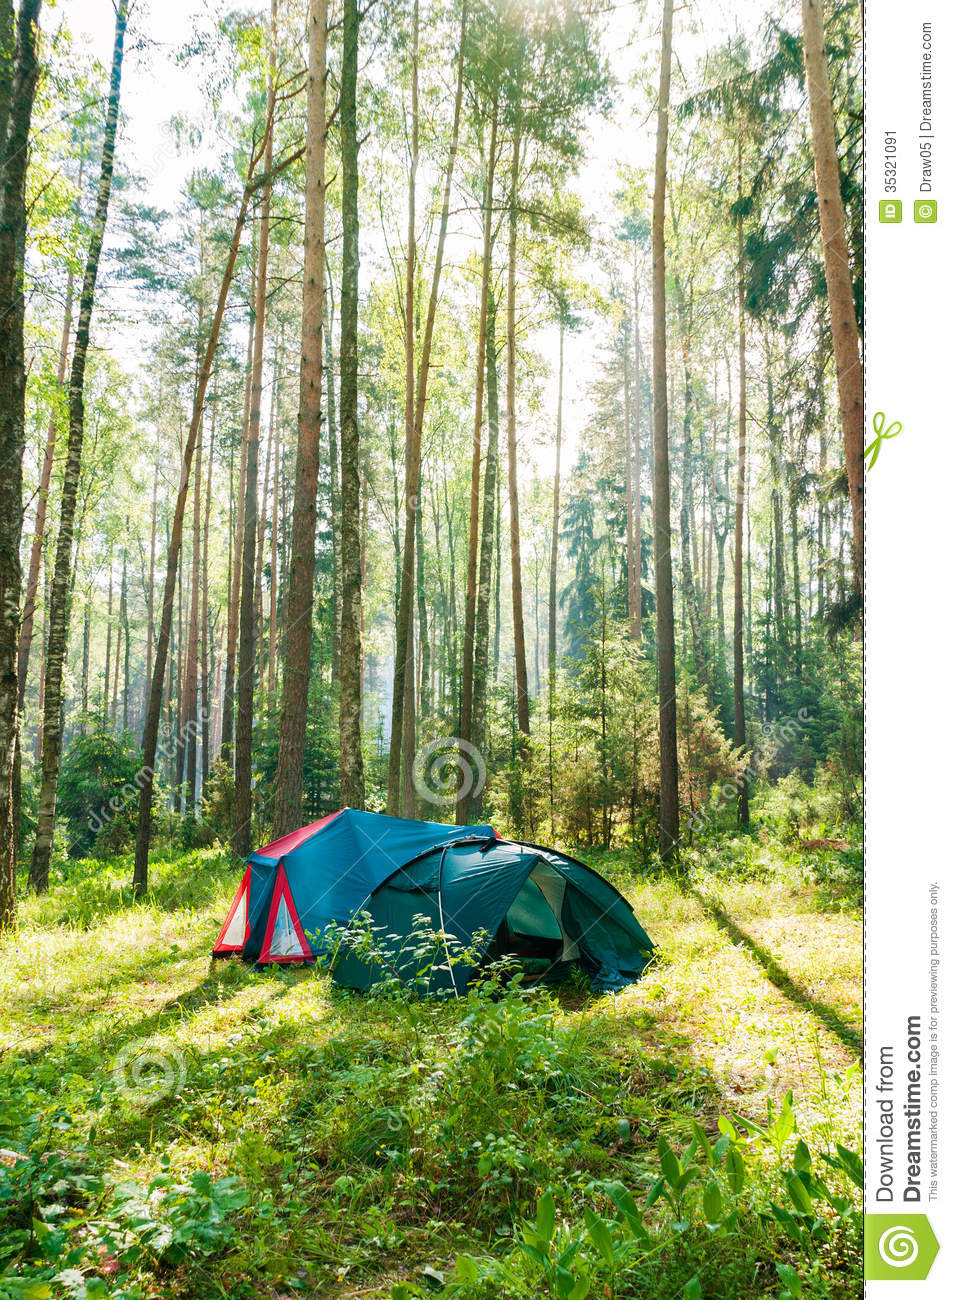 Morning tent